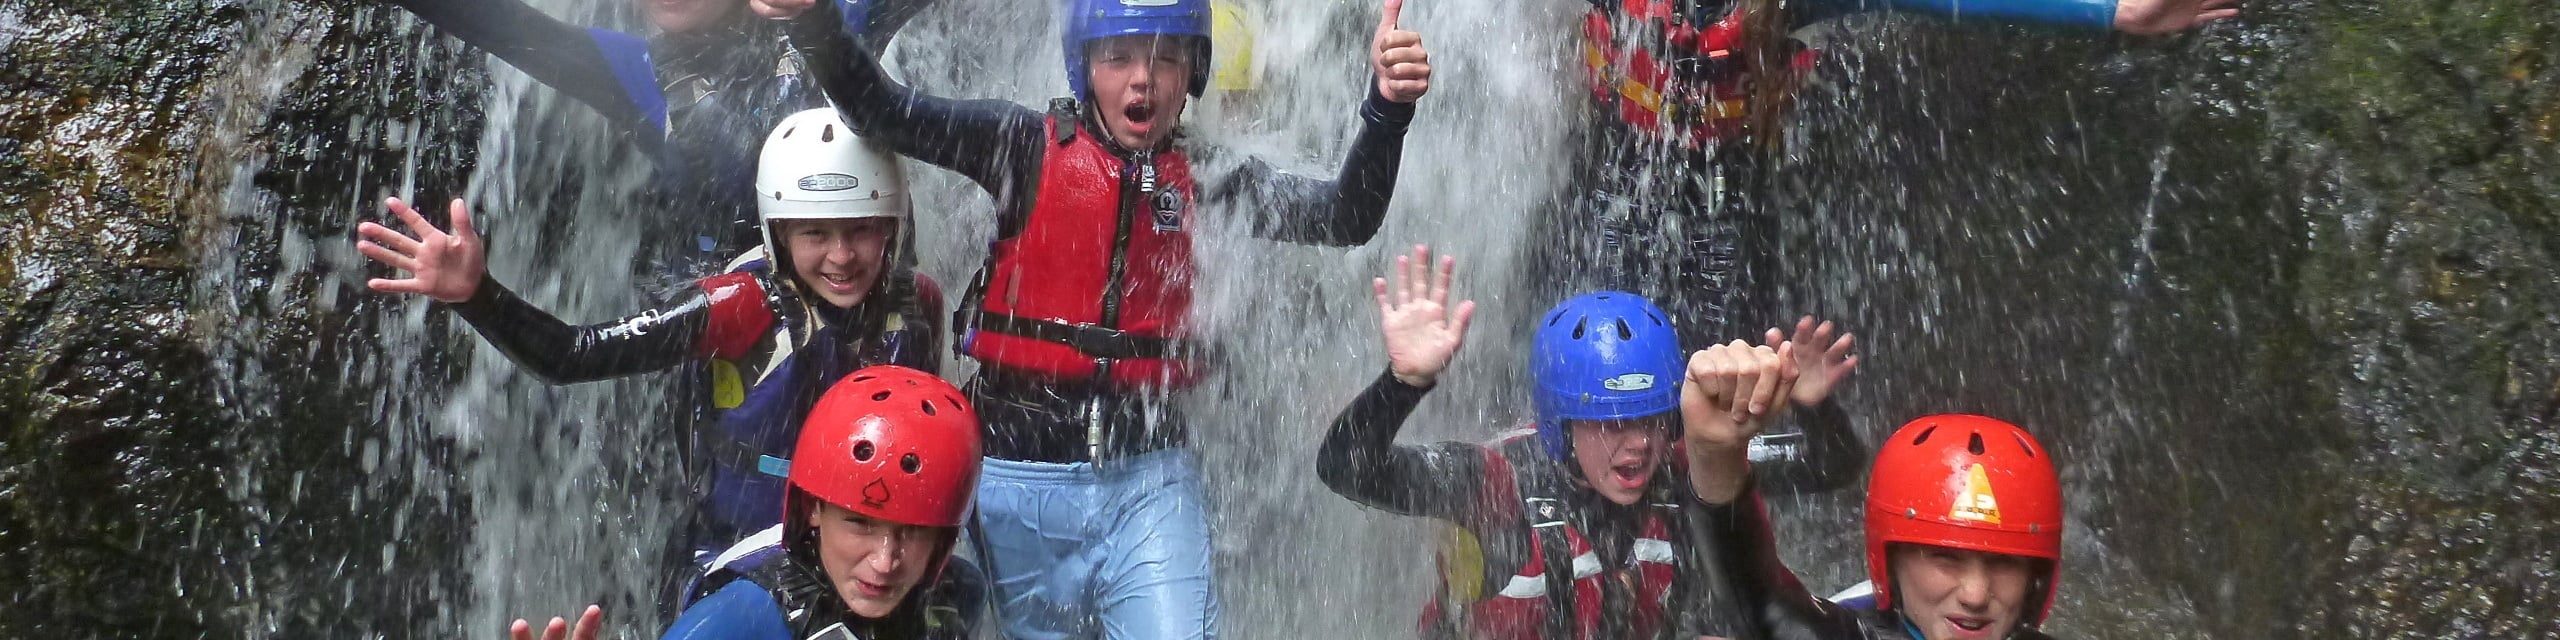 gorge scrambling activity centre north wales